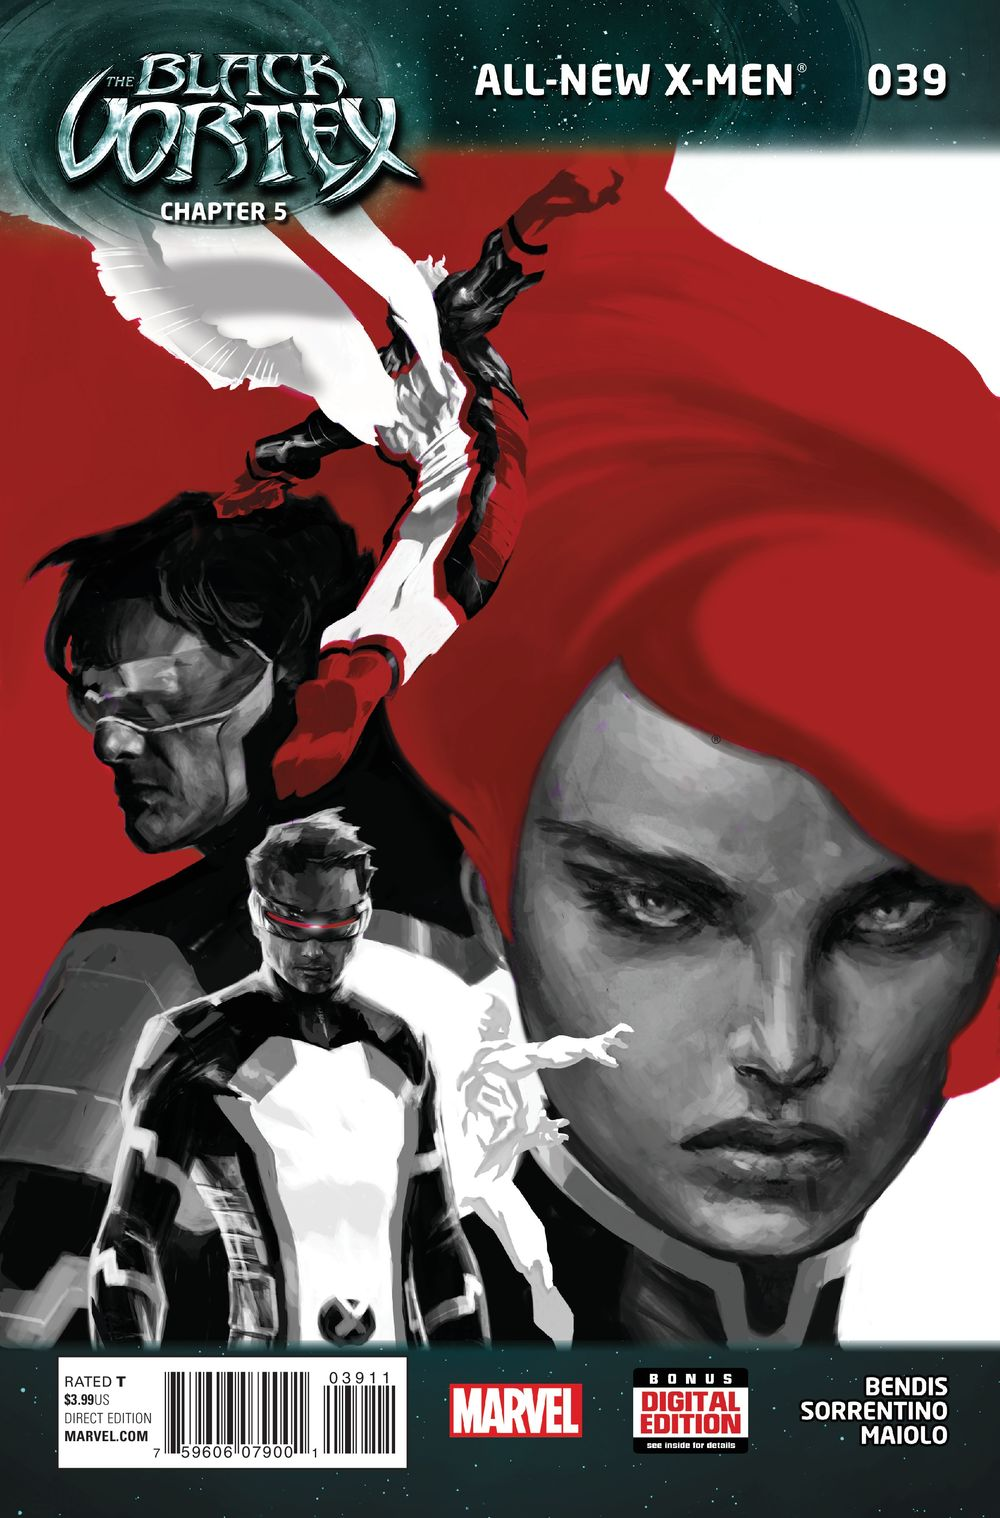 All-New X-Men issue 39.00